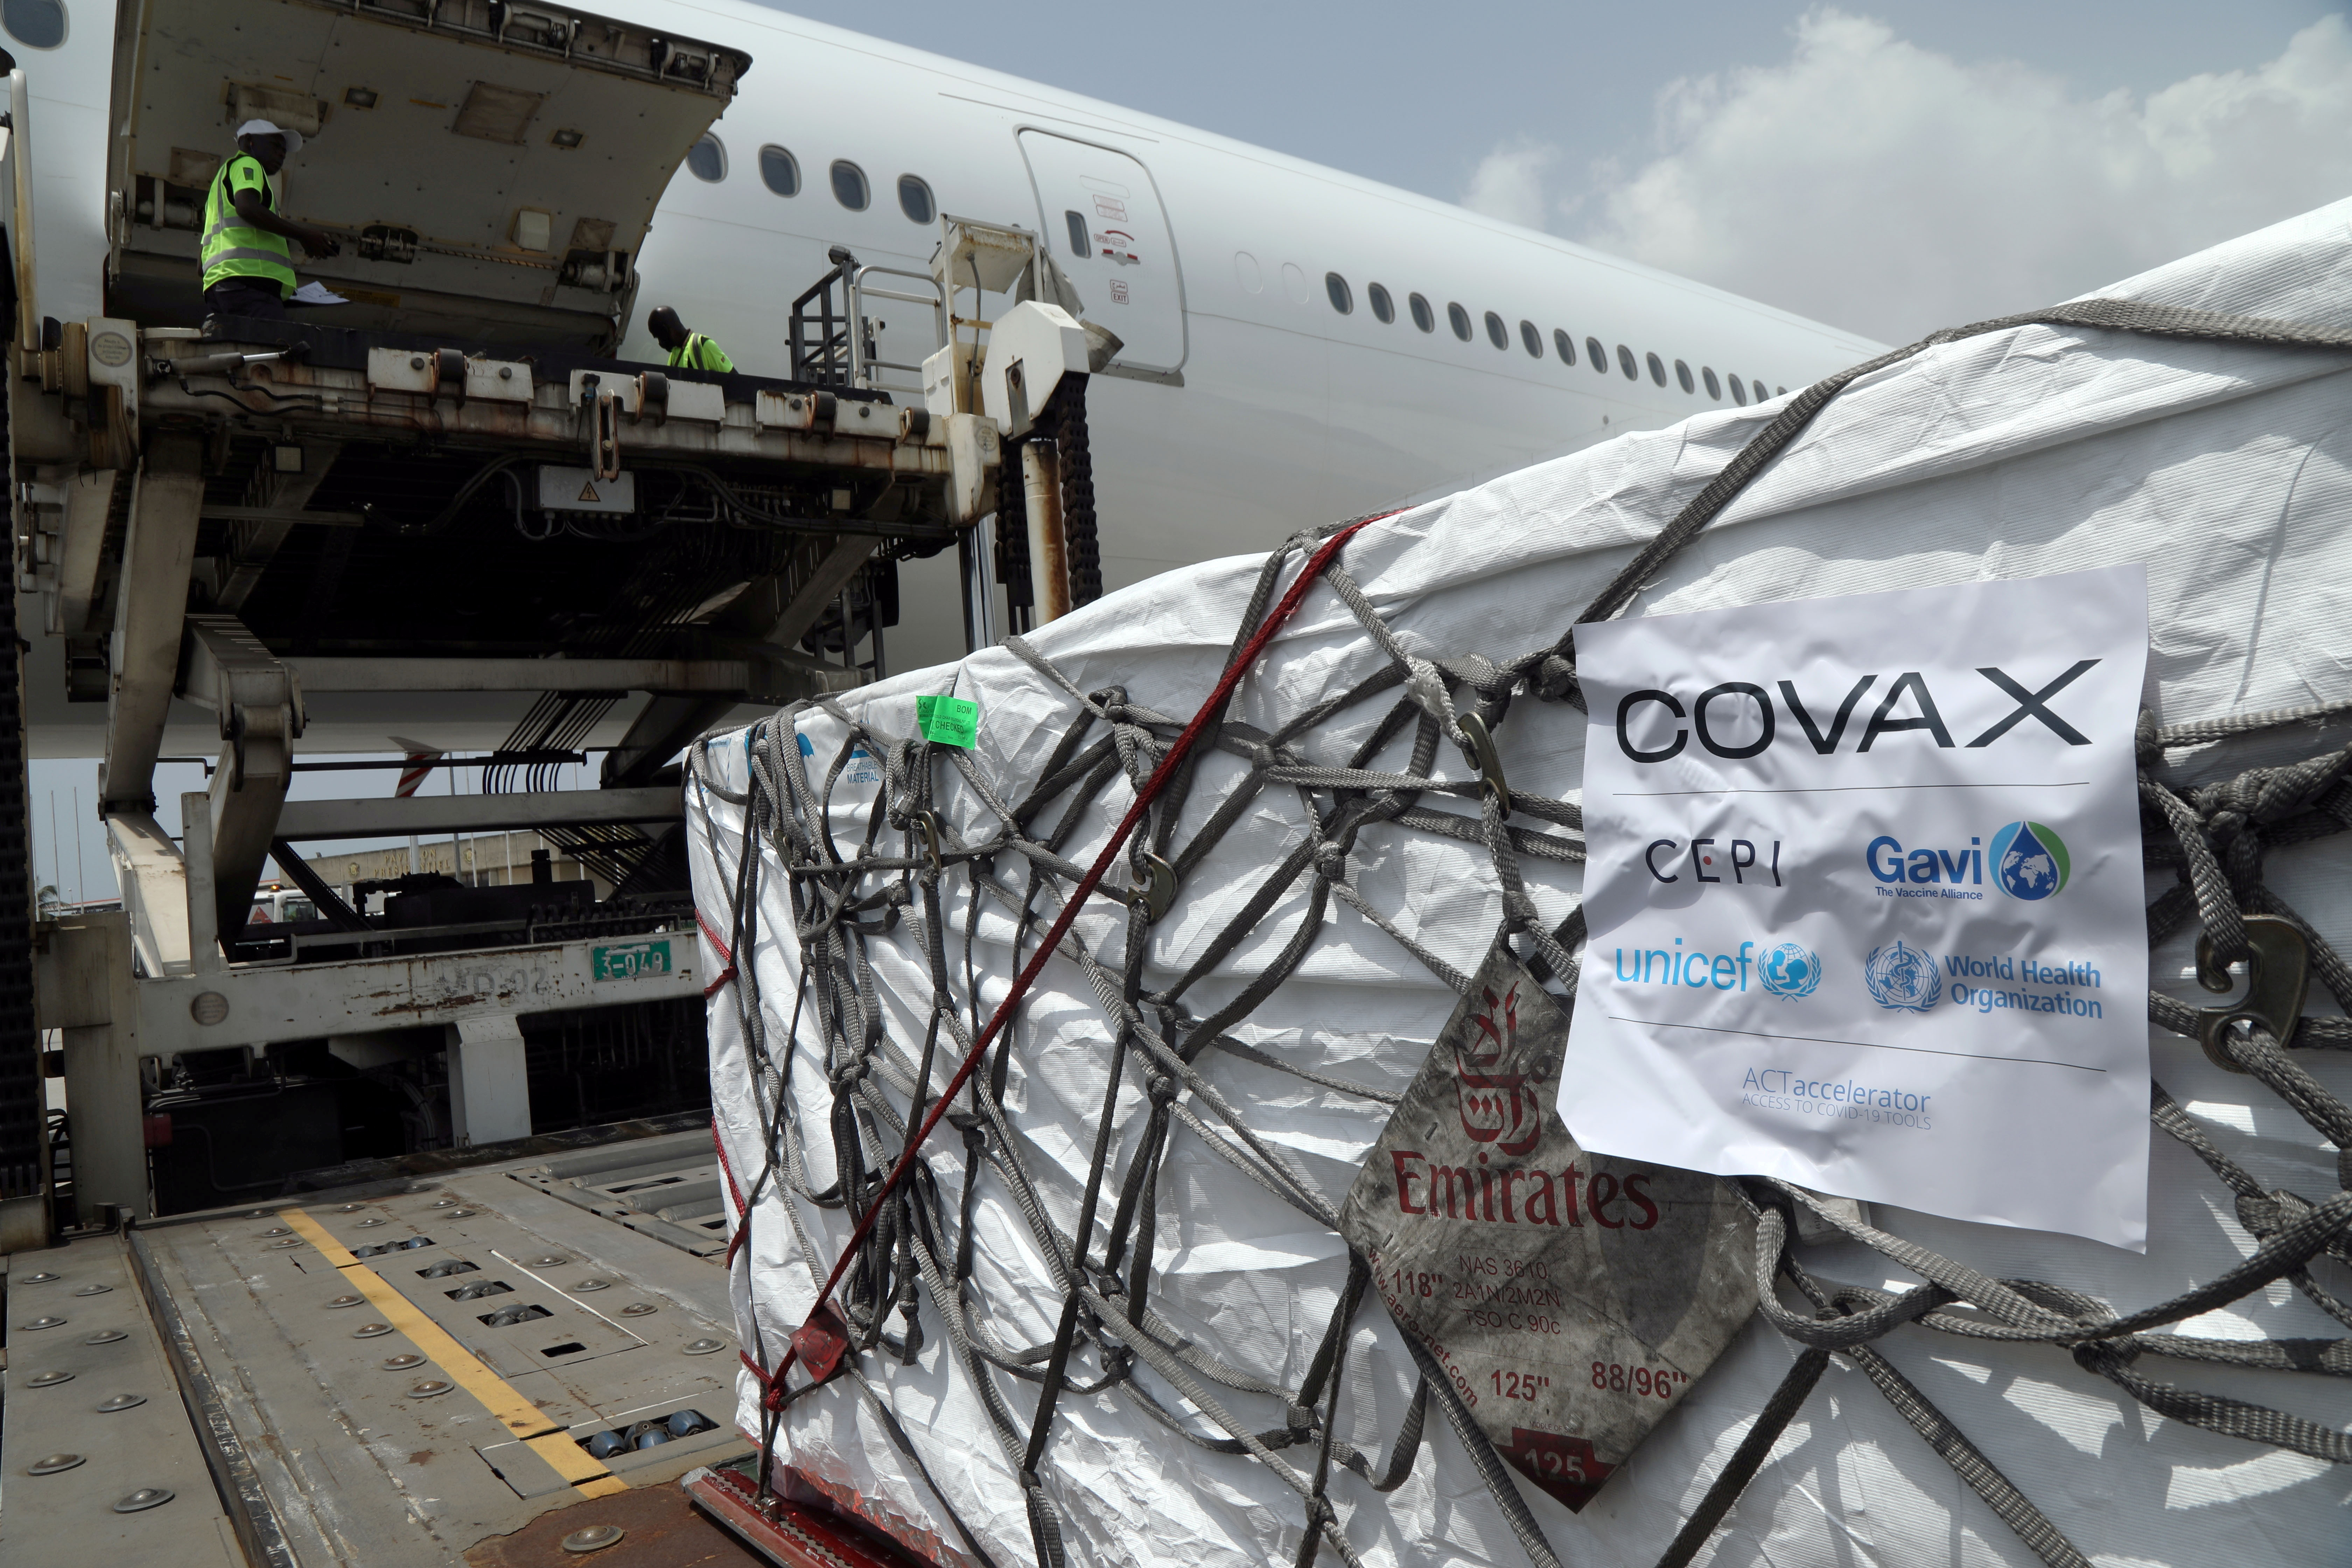 Workers offload boxes of AstraZeneca/Oxford vaccines as the country receives its first batch of coronavirus disease (COVID-19) vaccines under COVAX scheme, in Abidjan, Ivory Coast February 26, 2021. REUTERS/Luc Gnago - RC2C0M9YAB90